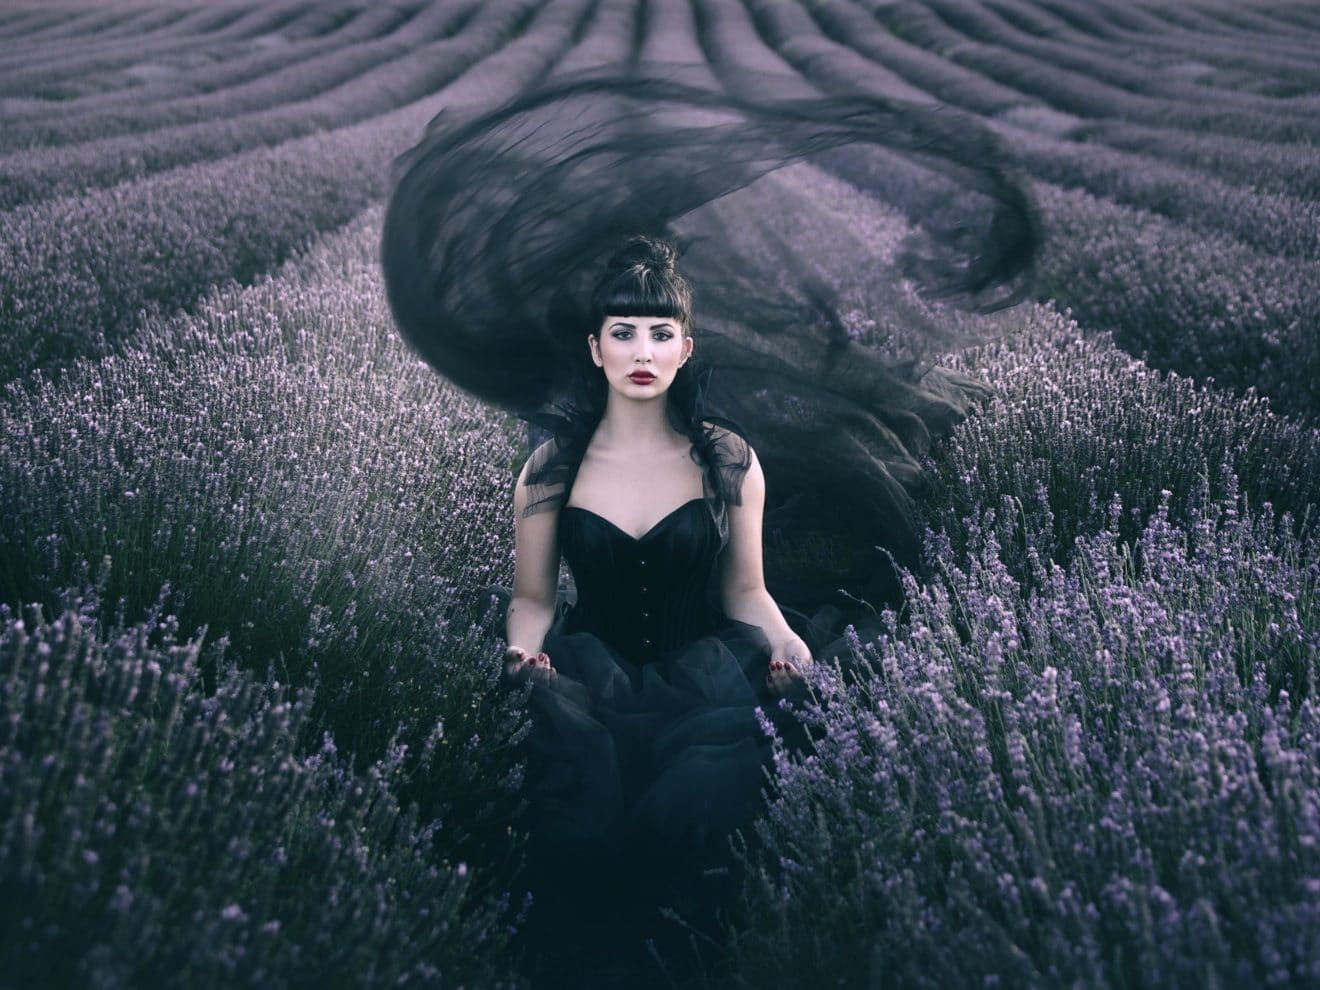 Gothic and the Ambivalence of Misogyny and Resistance